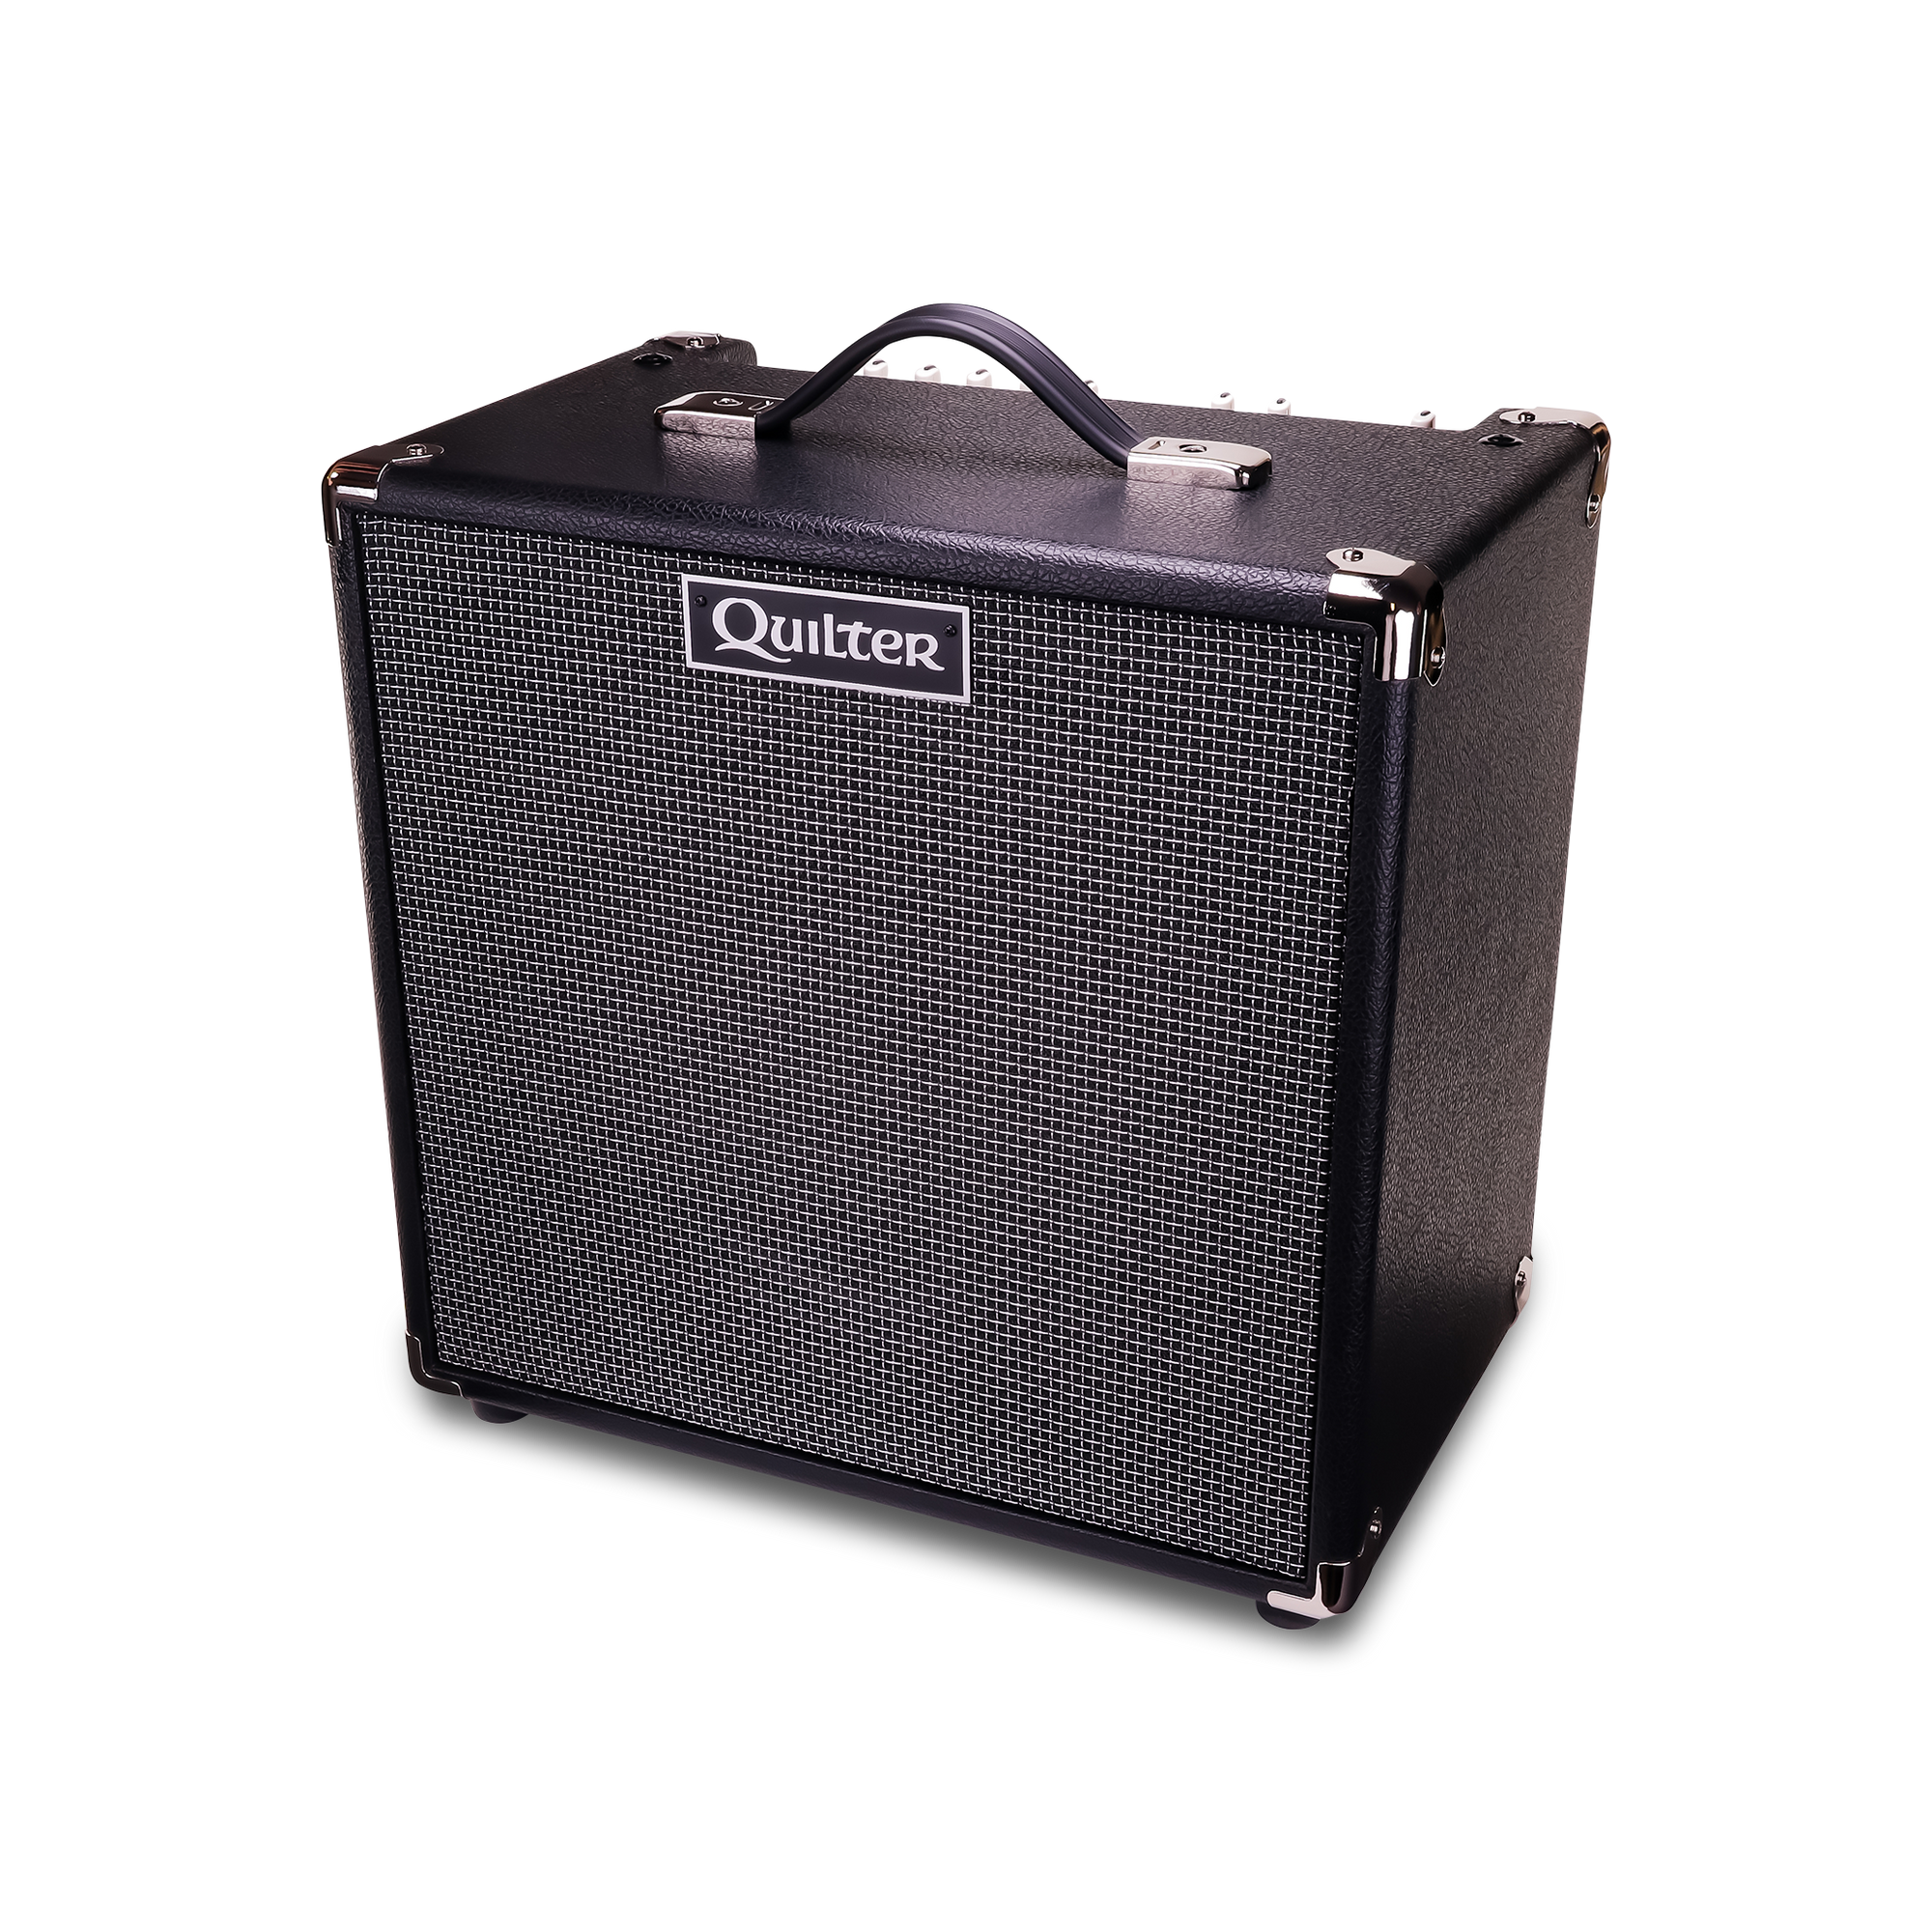 Quilter Labs Aviator Cub 1x12 Combo